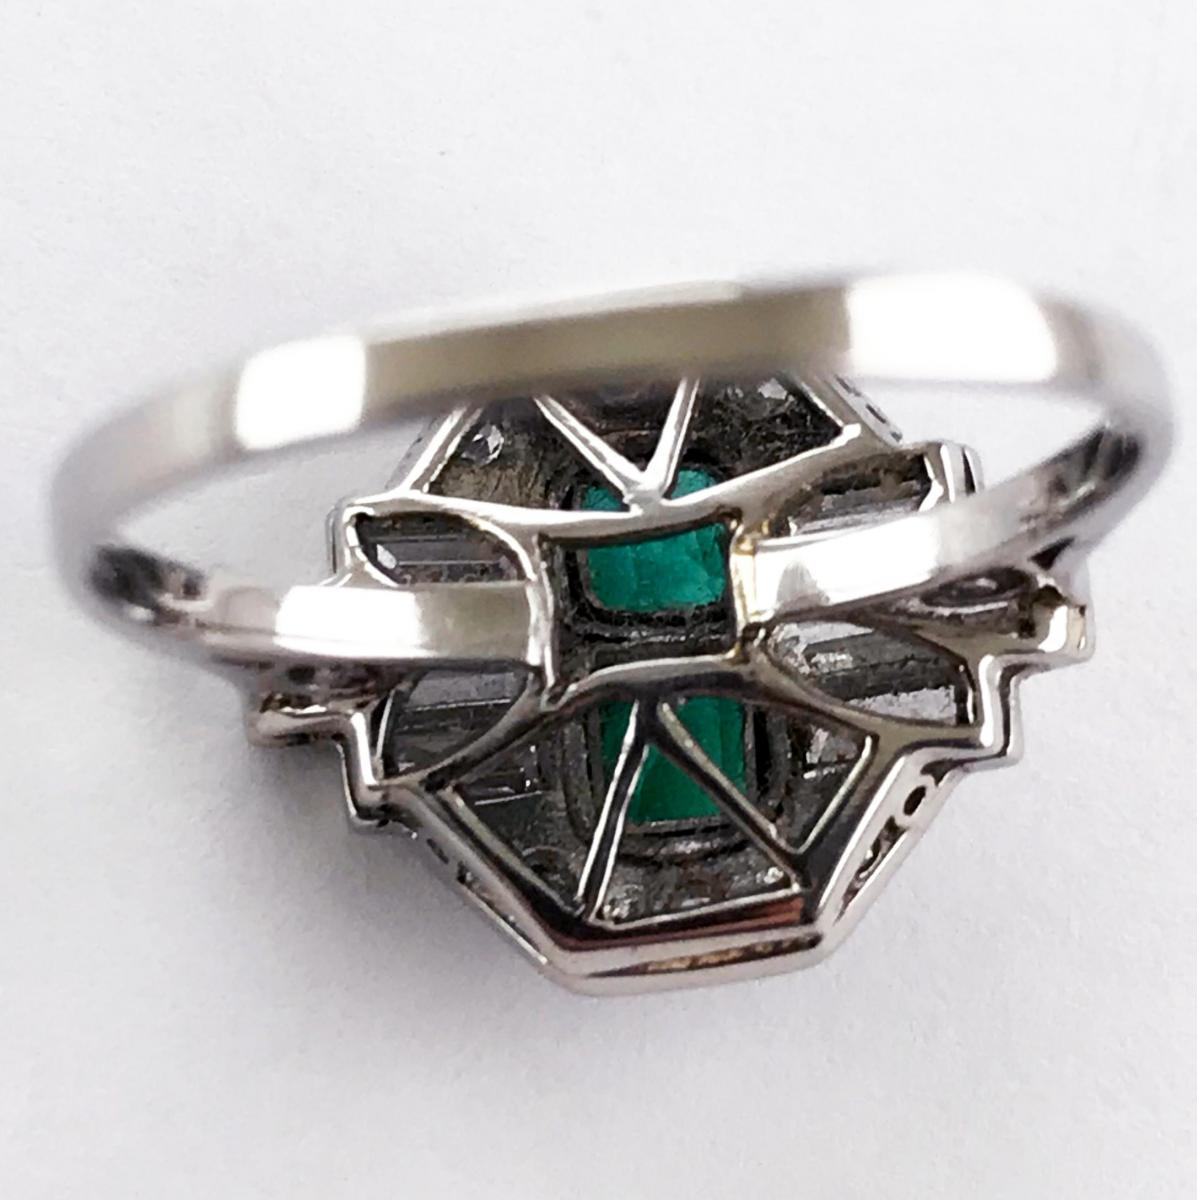 Platinum Art Deco Emerald and Diamond Ring, Circa 1920